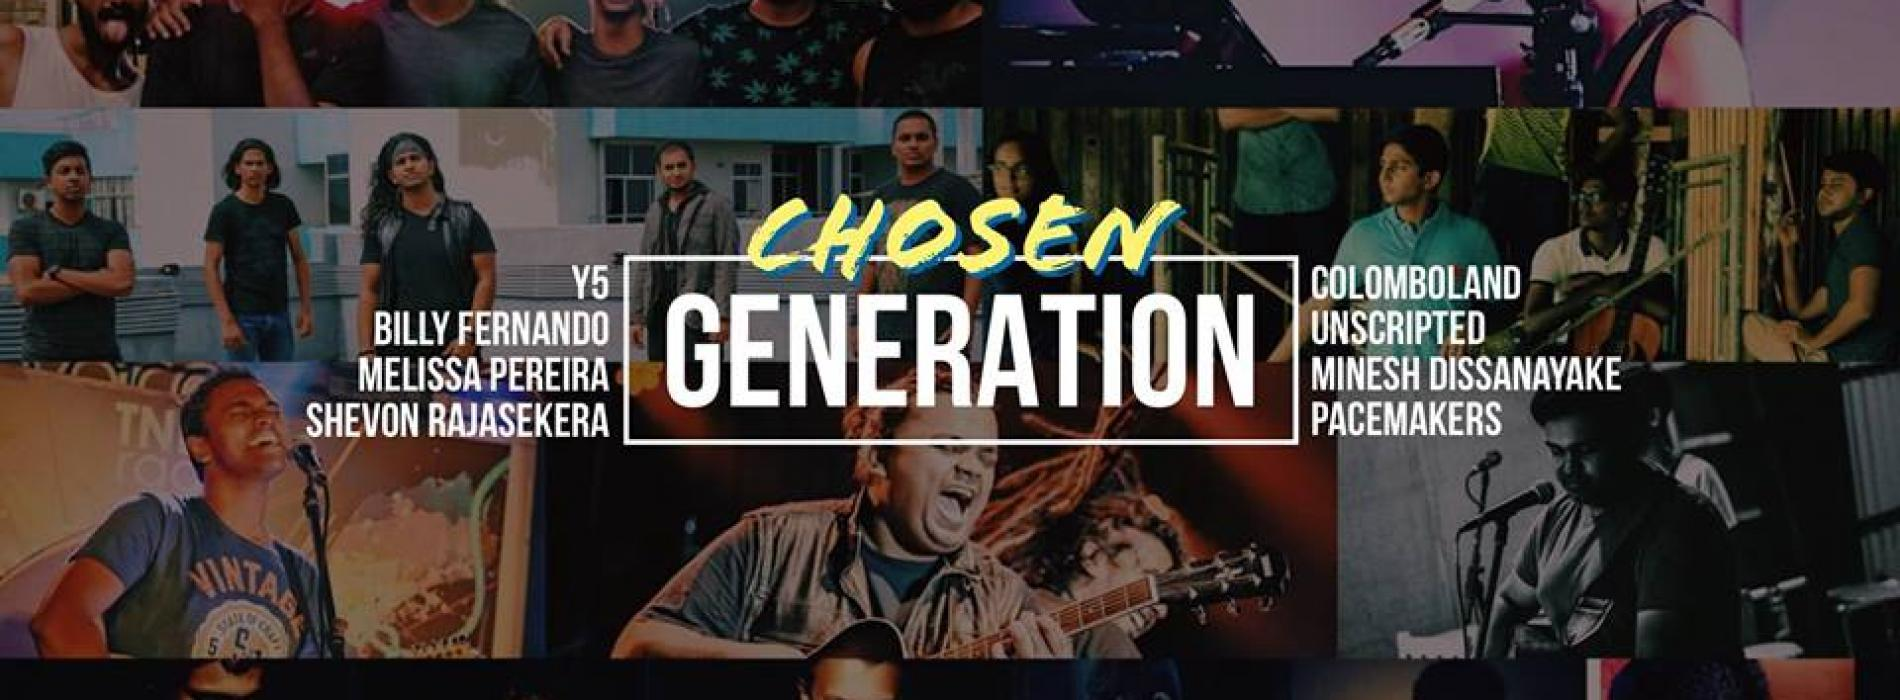 Chosen Generation By Appé Lanka